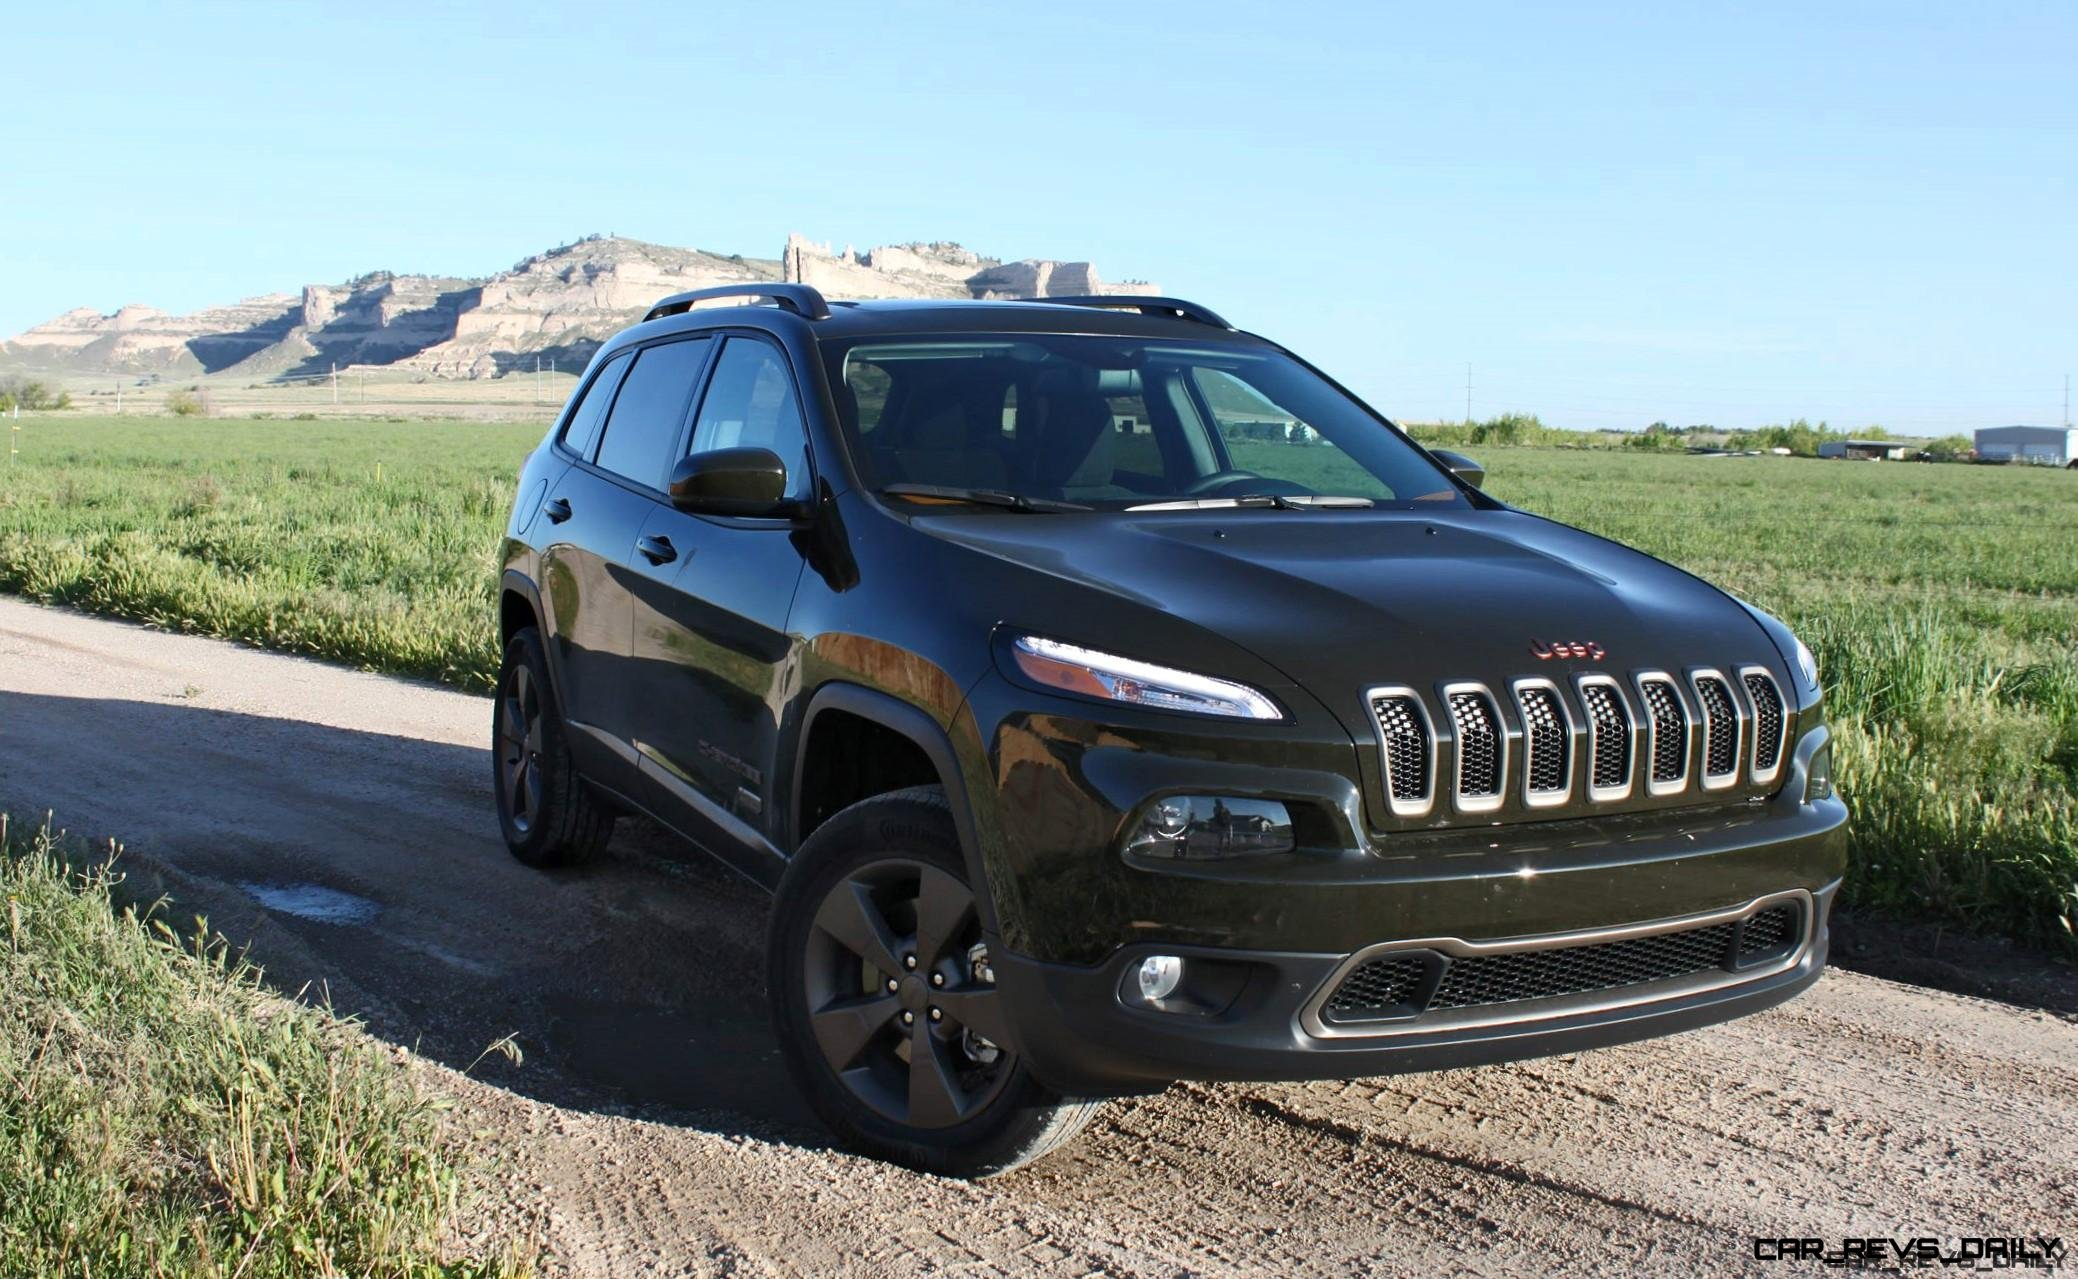 anniversary car wrangler f first jeep drive prevnext the gear reviews top auto crd